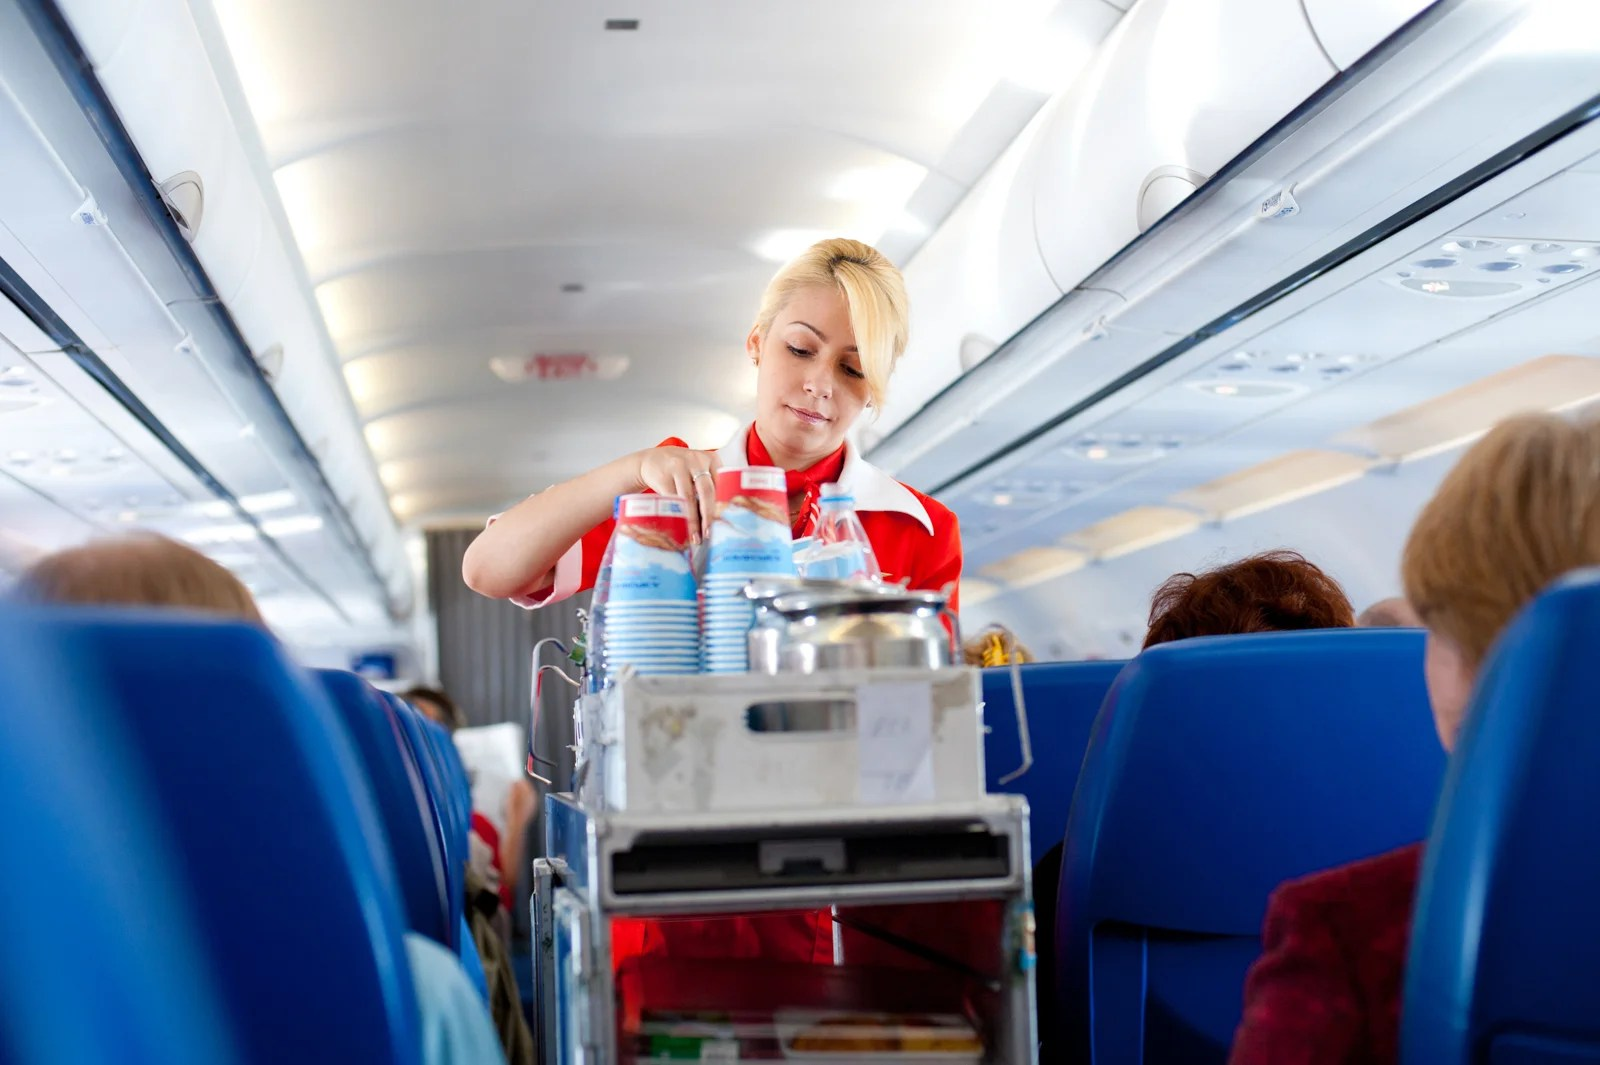 Here's Why You Almost Never See Pepsi Served on a Plane